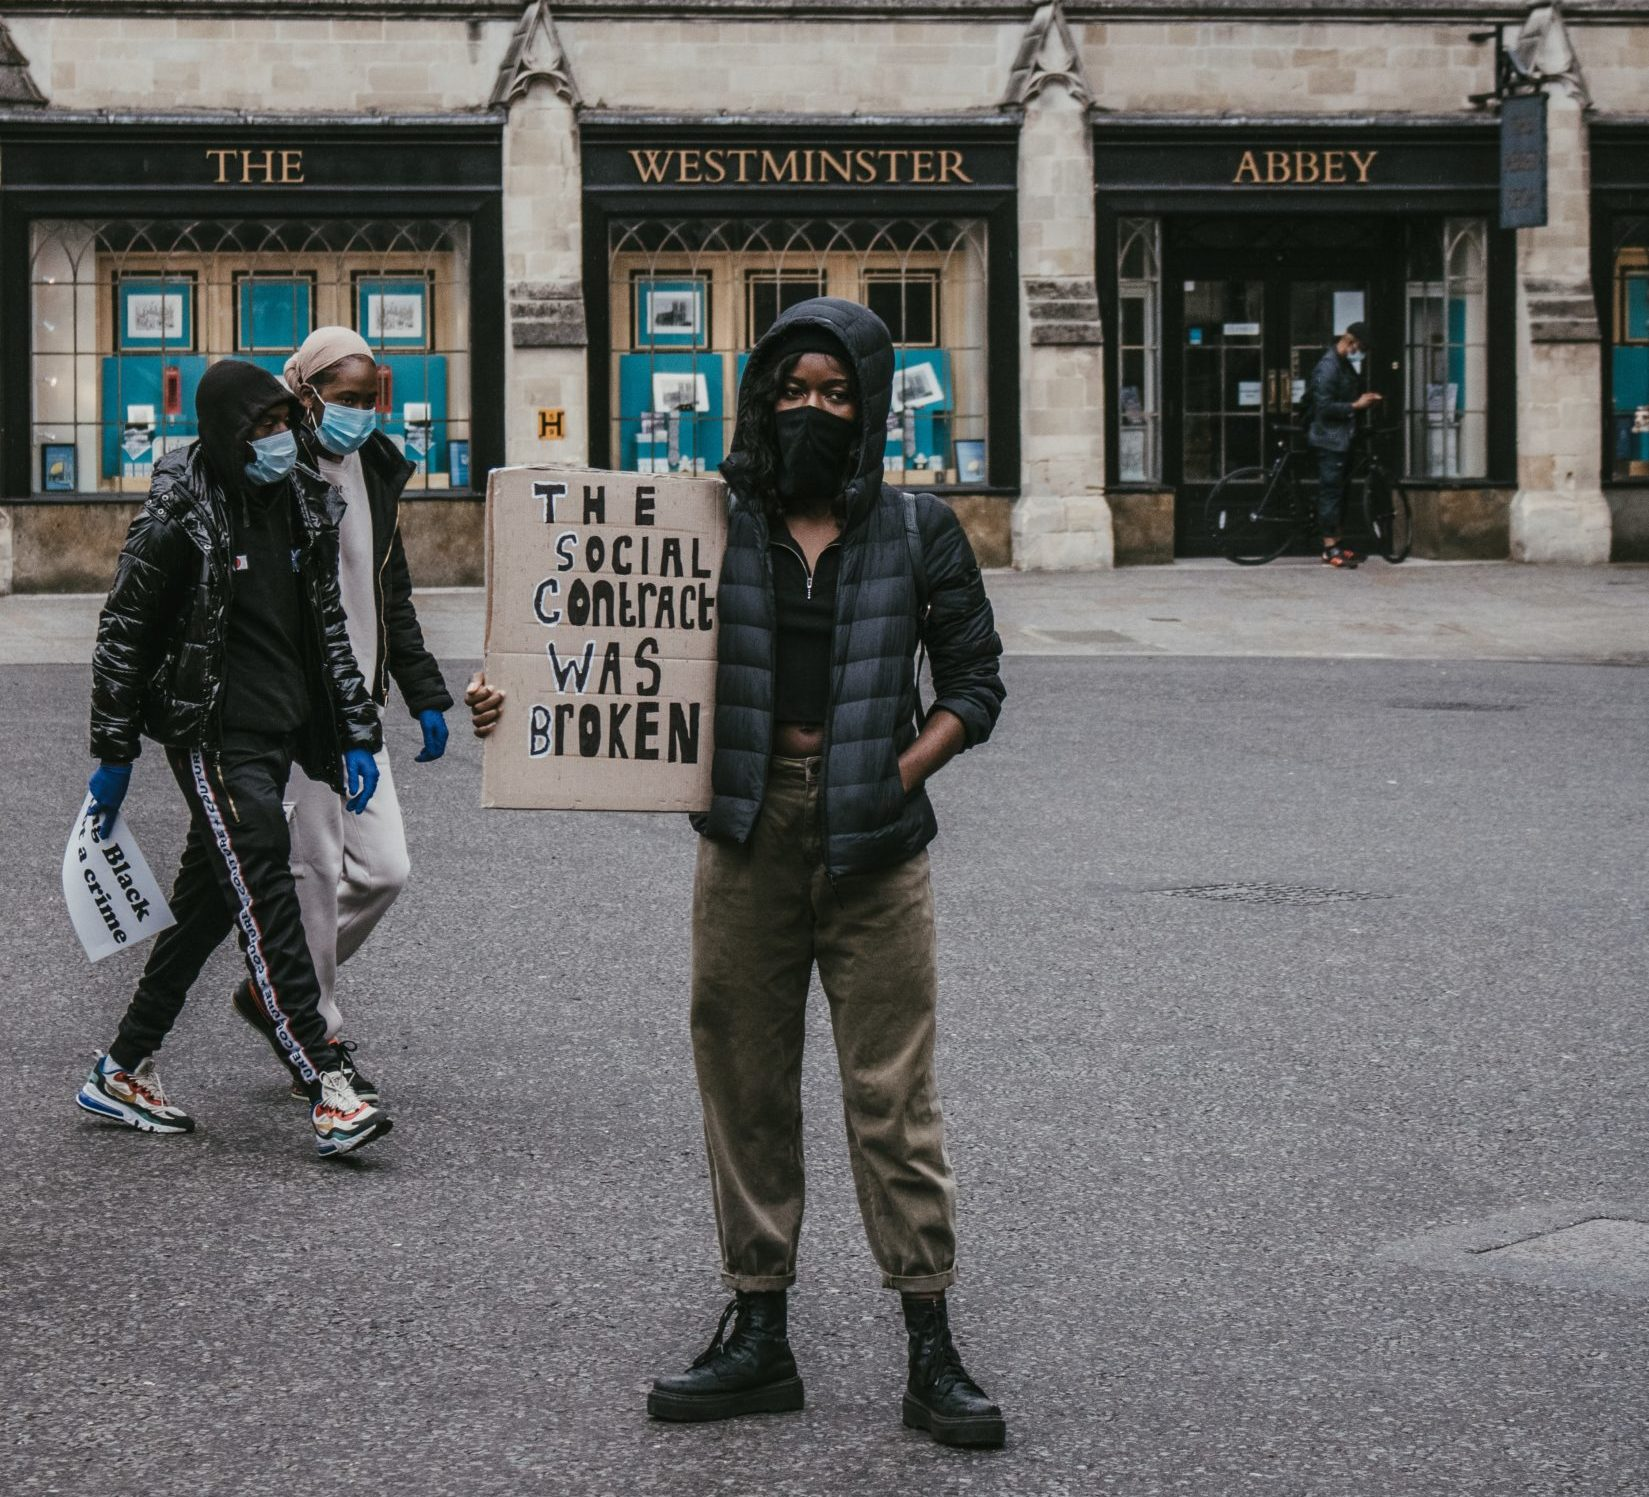 "A black person wearing a black face mask, a black puffy jacket with the hood up, a black shirt, cargo pants, and black boots stands in front of the bottom floor of the Westminster Abbey, holding a sign that says ""The social contract was broken"""